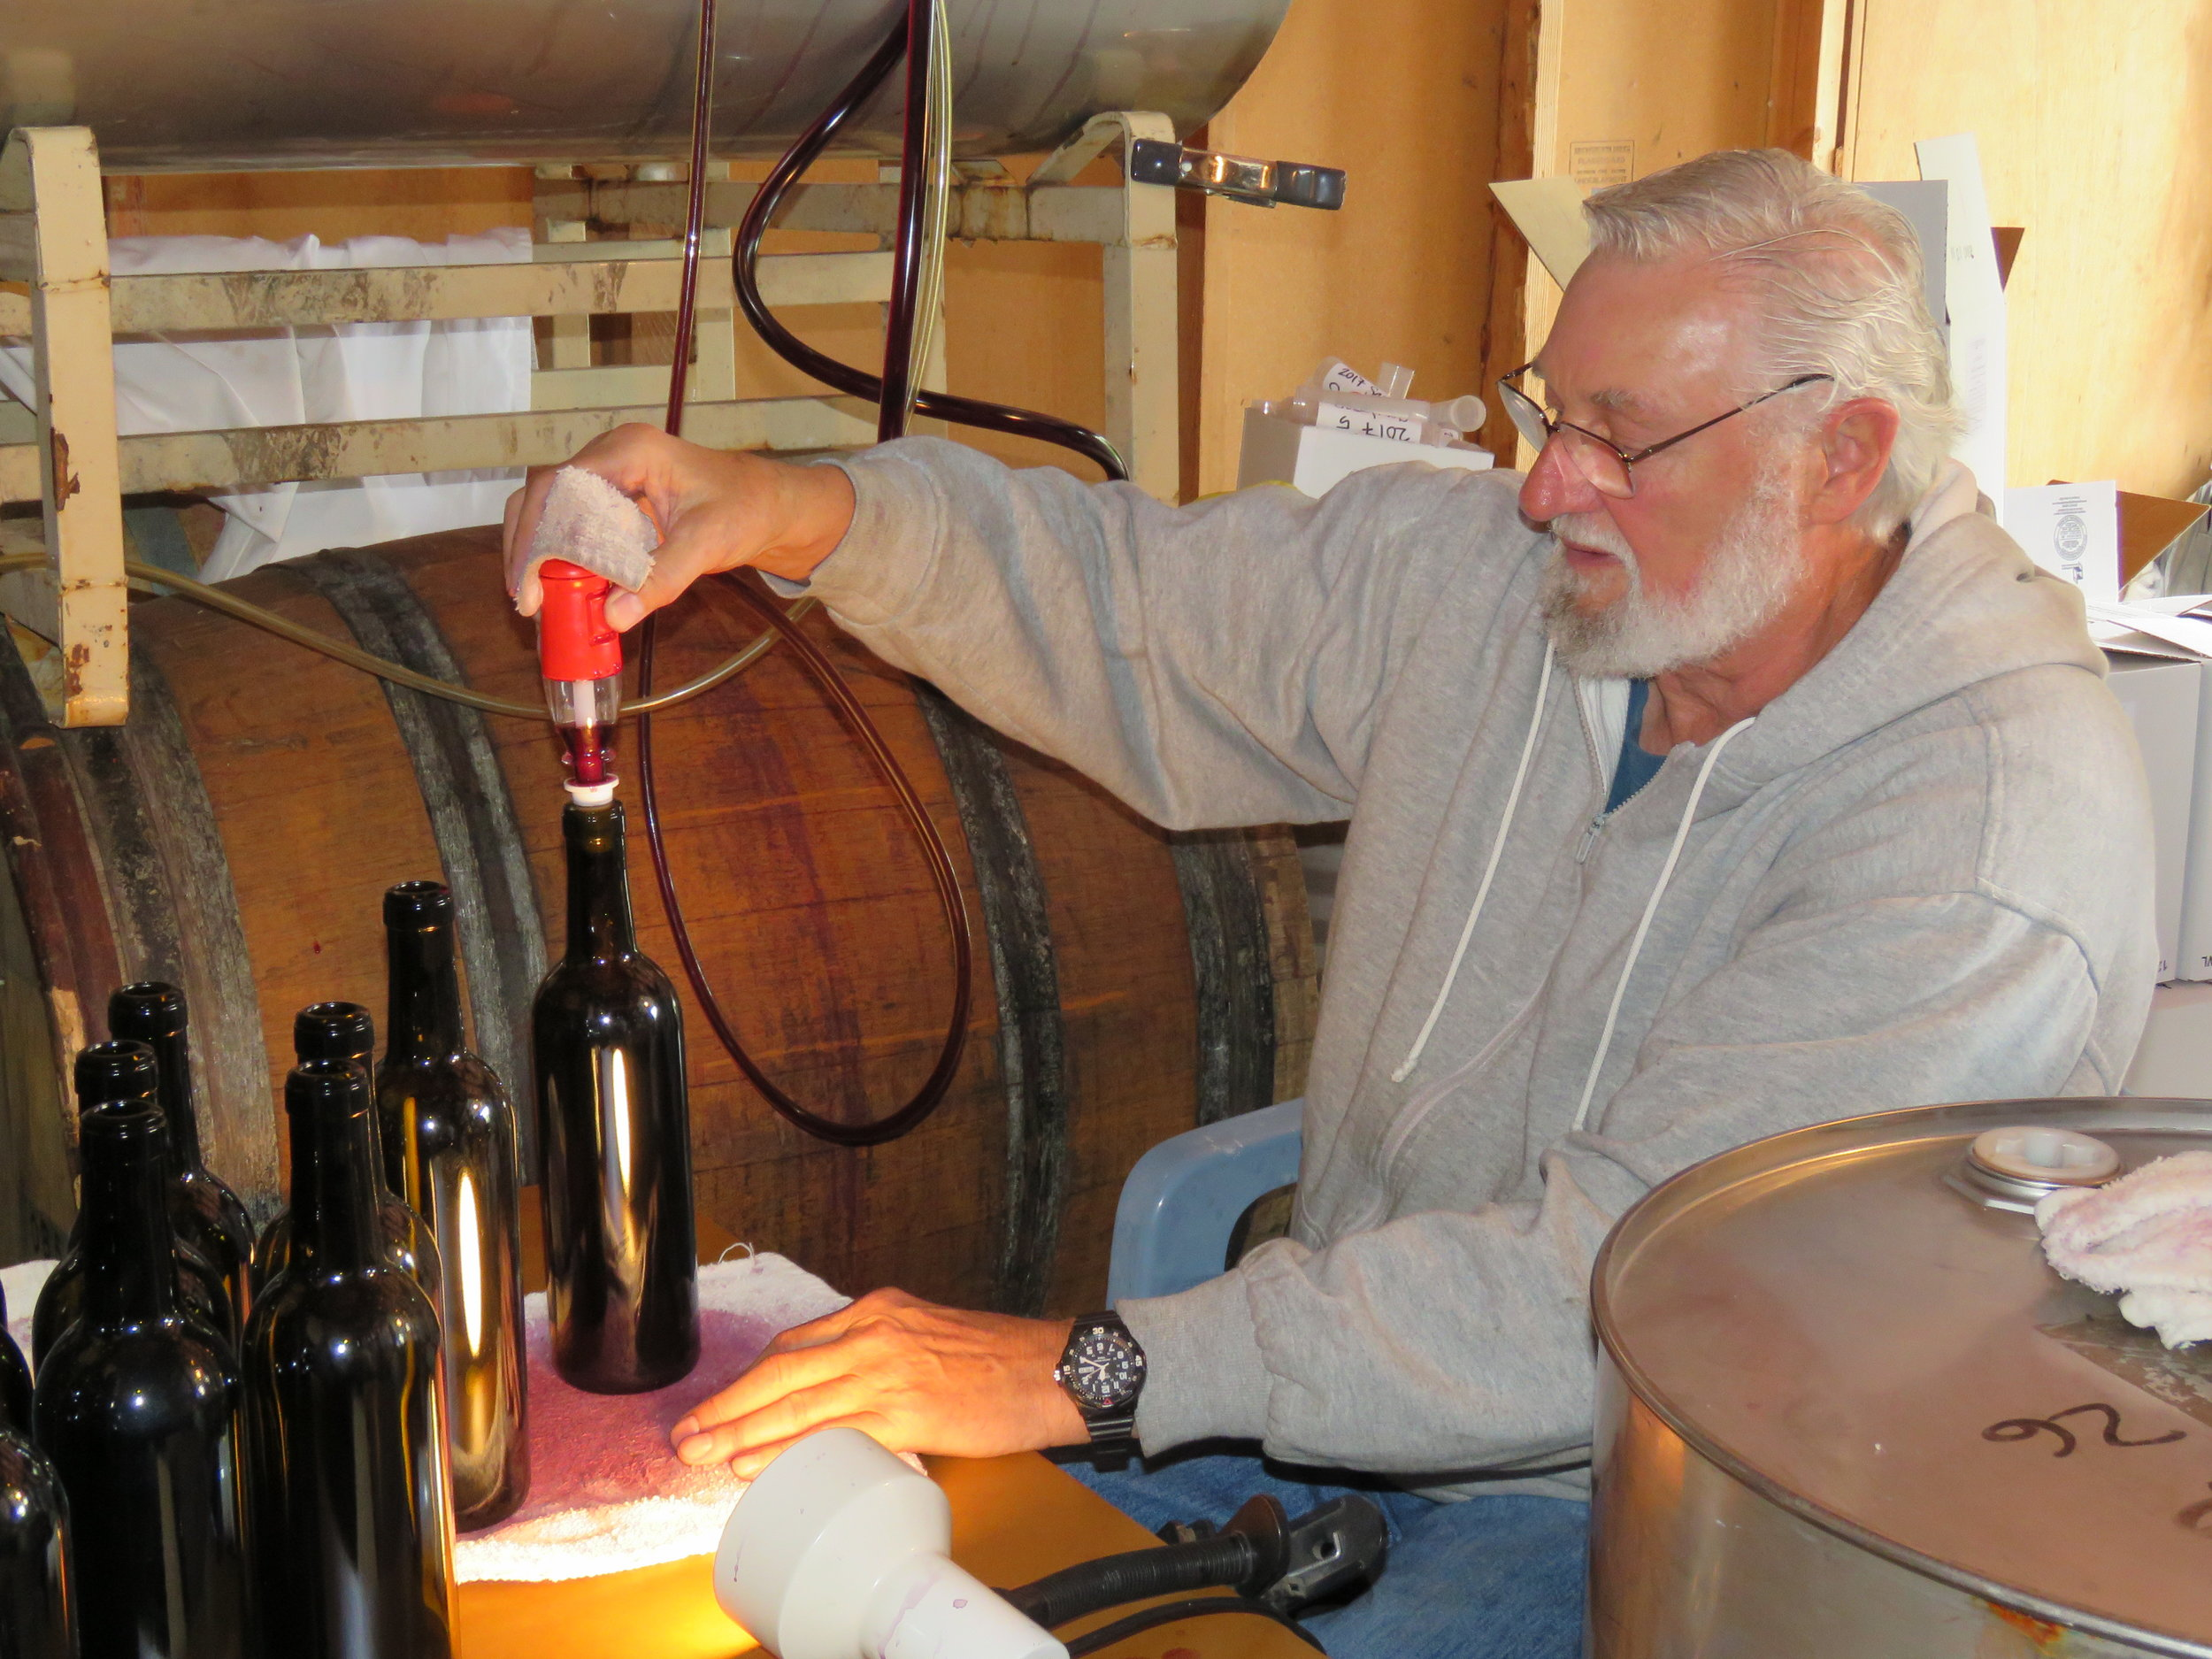 Jay filling the bottles with wine from the barrels